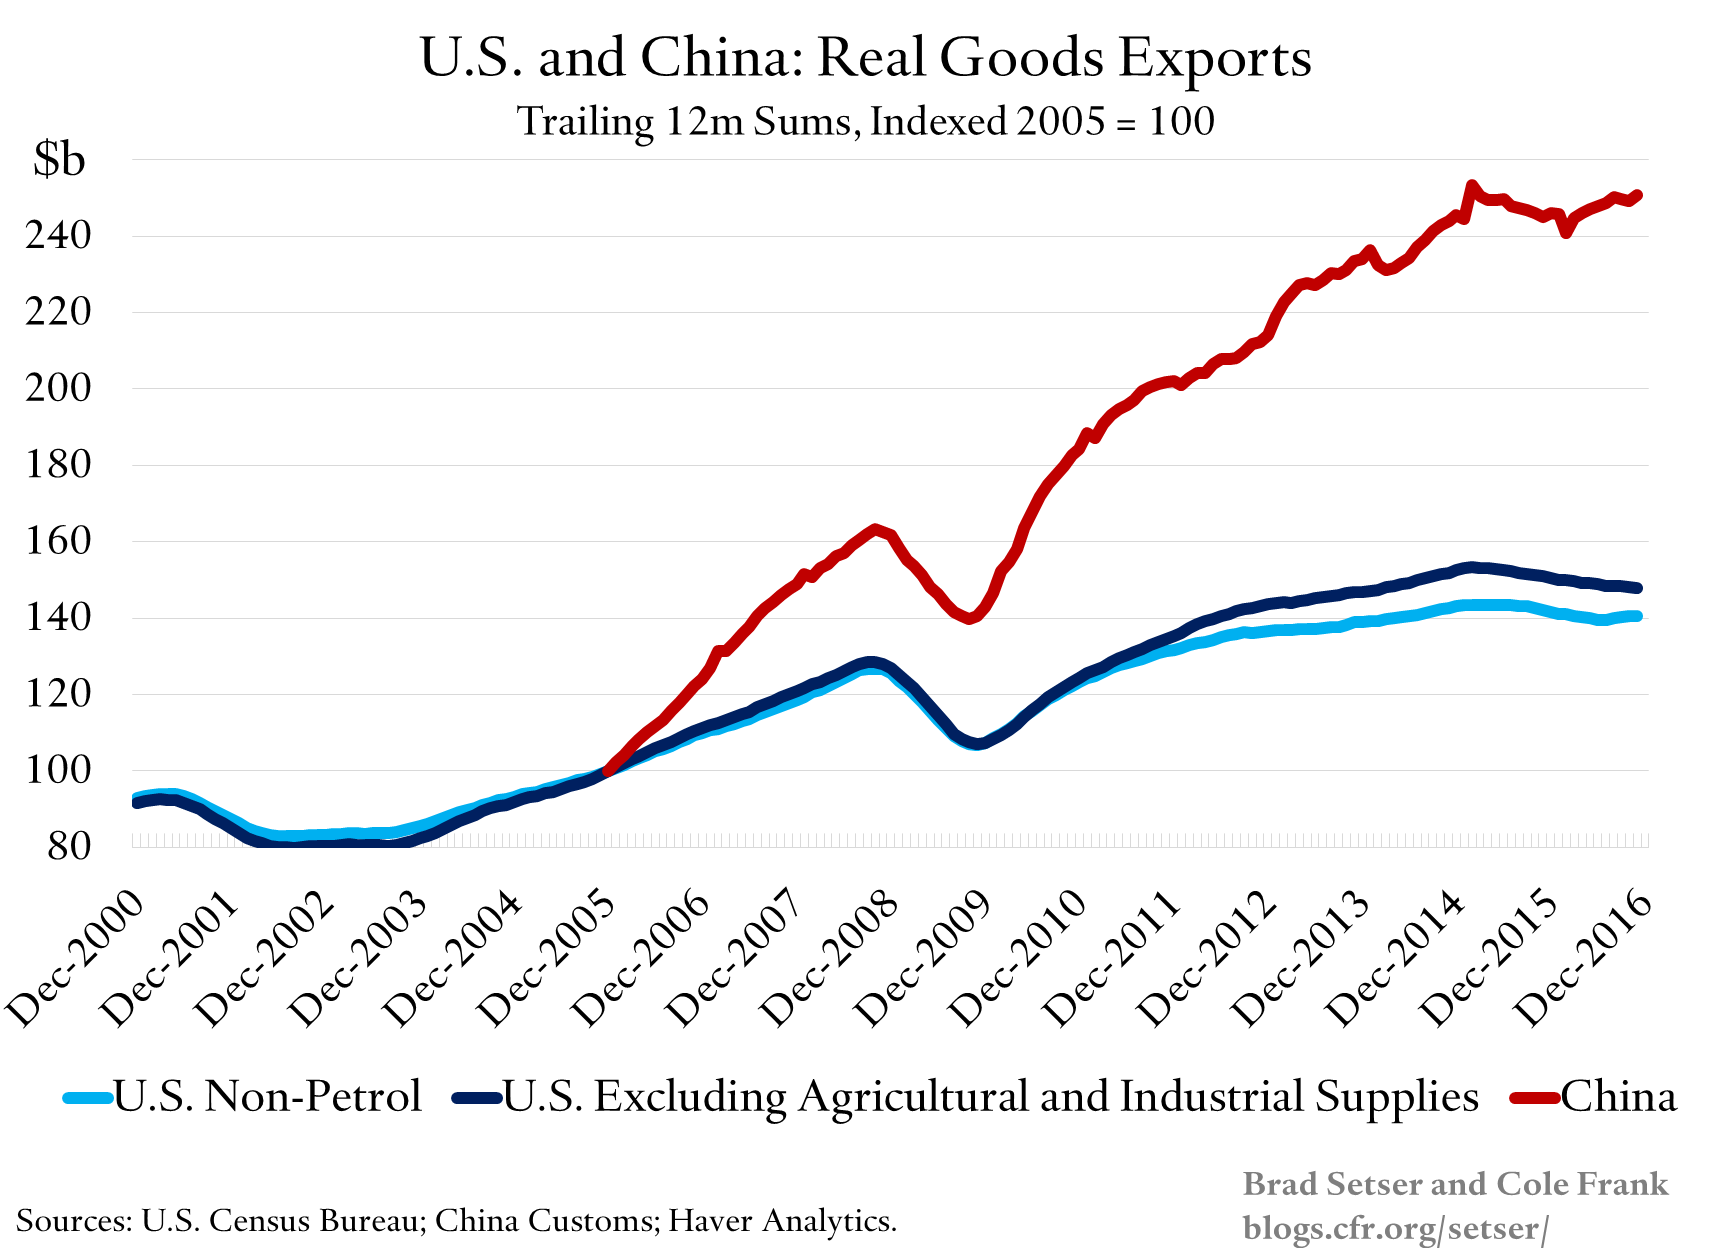 us-v-china-real-goods-exports